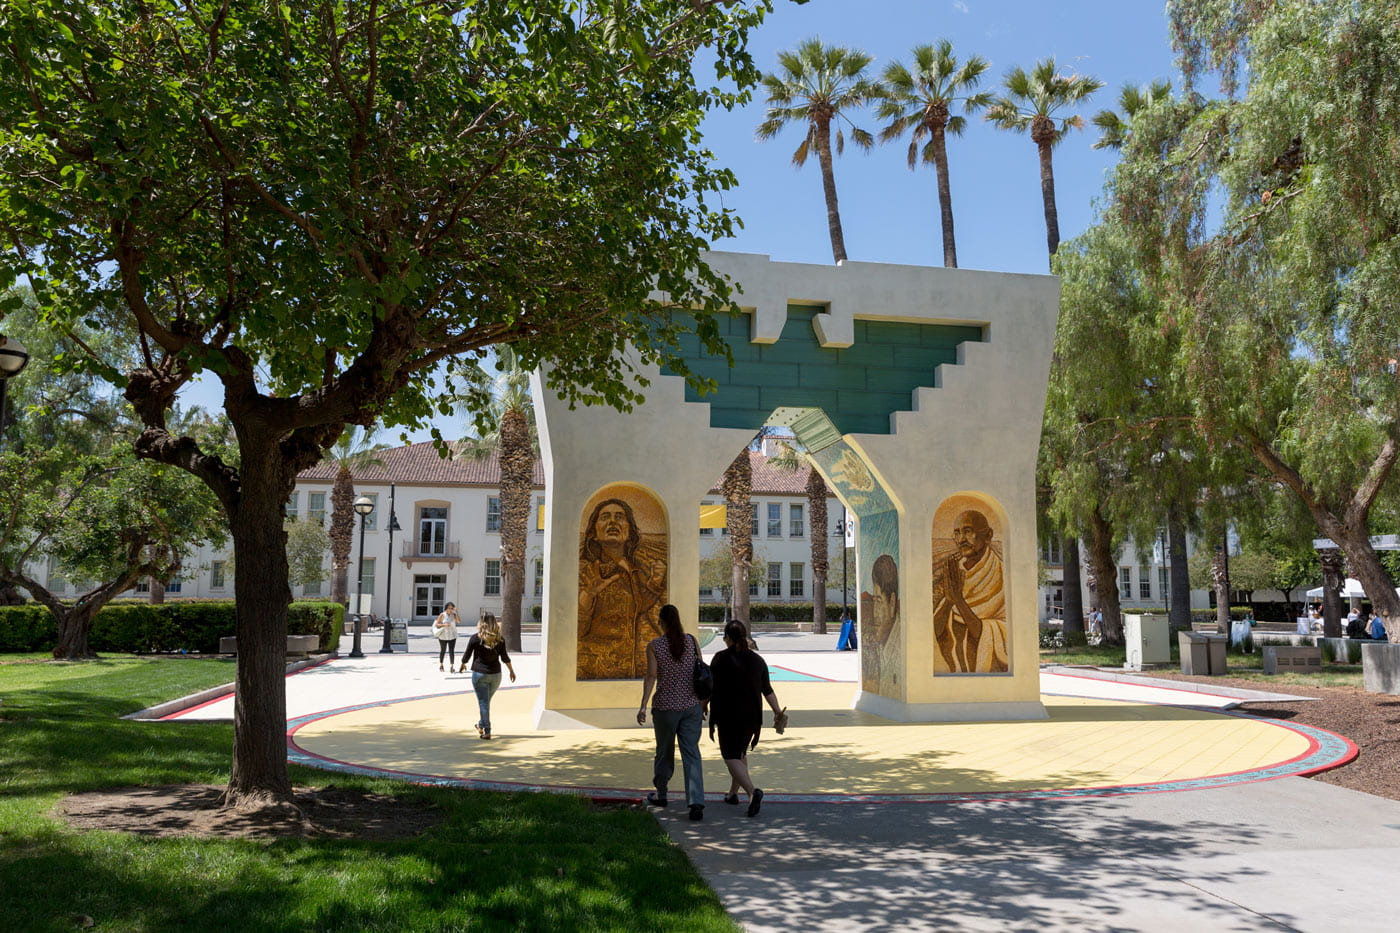 The Cesar E. Chavez Monument: Arch of Dignity, Equality and Justice on the grounds of SJSU.